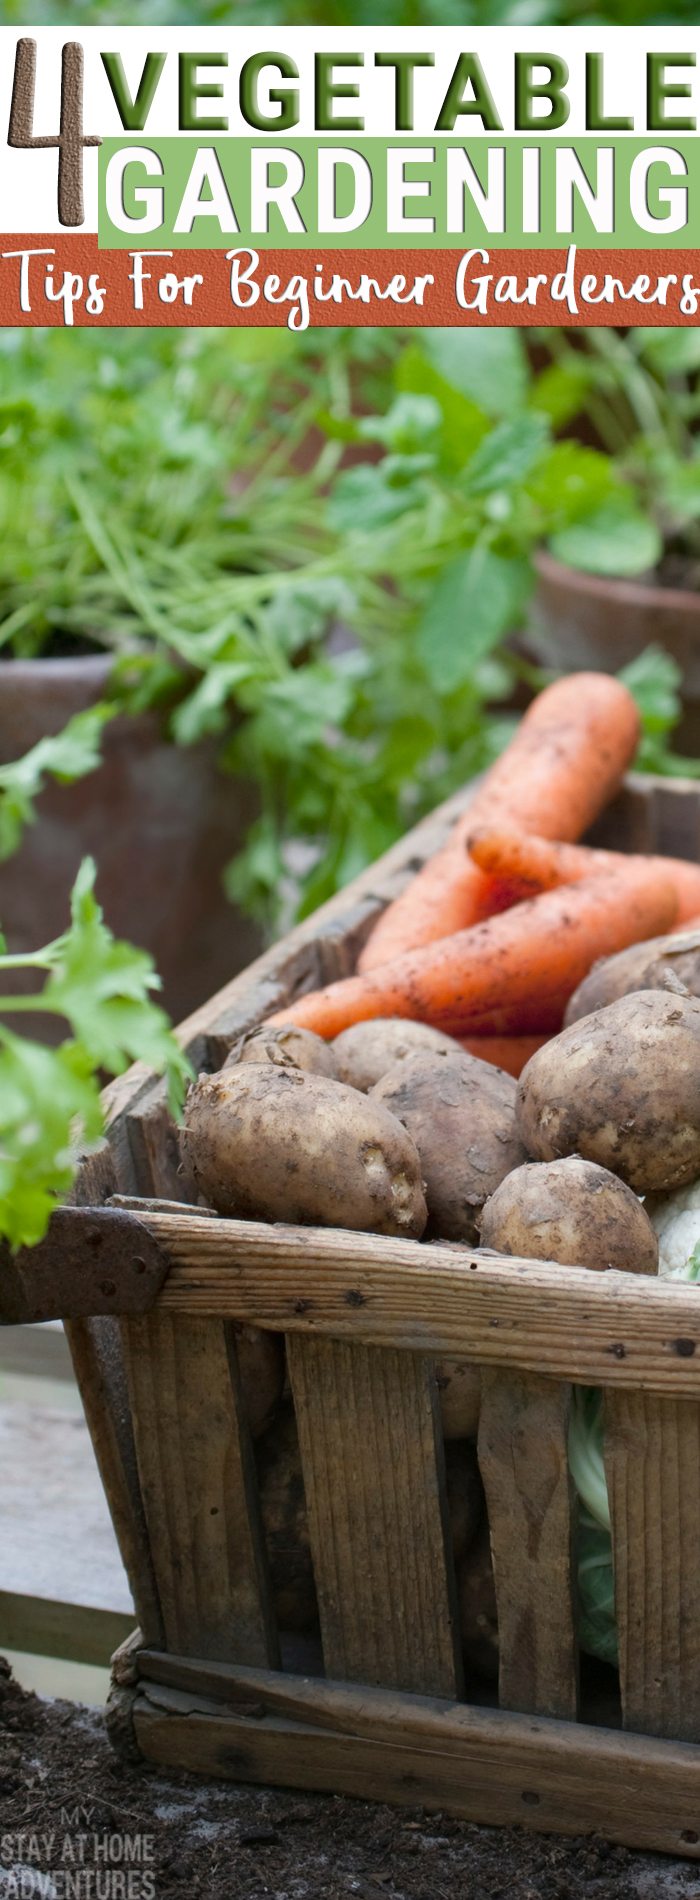 Beginner gardener?  No problem! These vegetable gardening tips are going to help you and motivate you to start your vegetable garden this season without fear of failing.